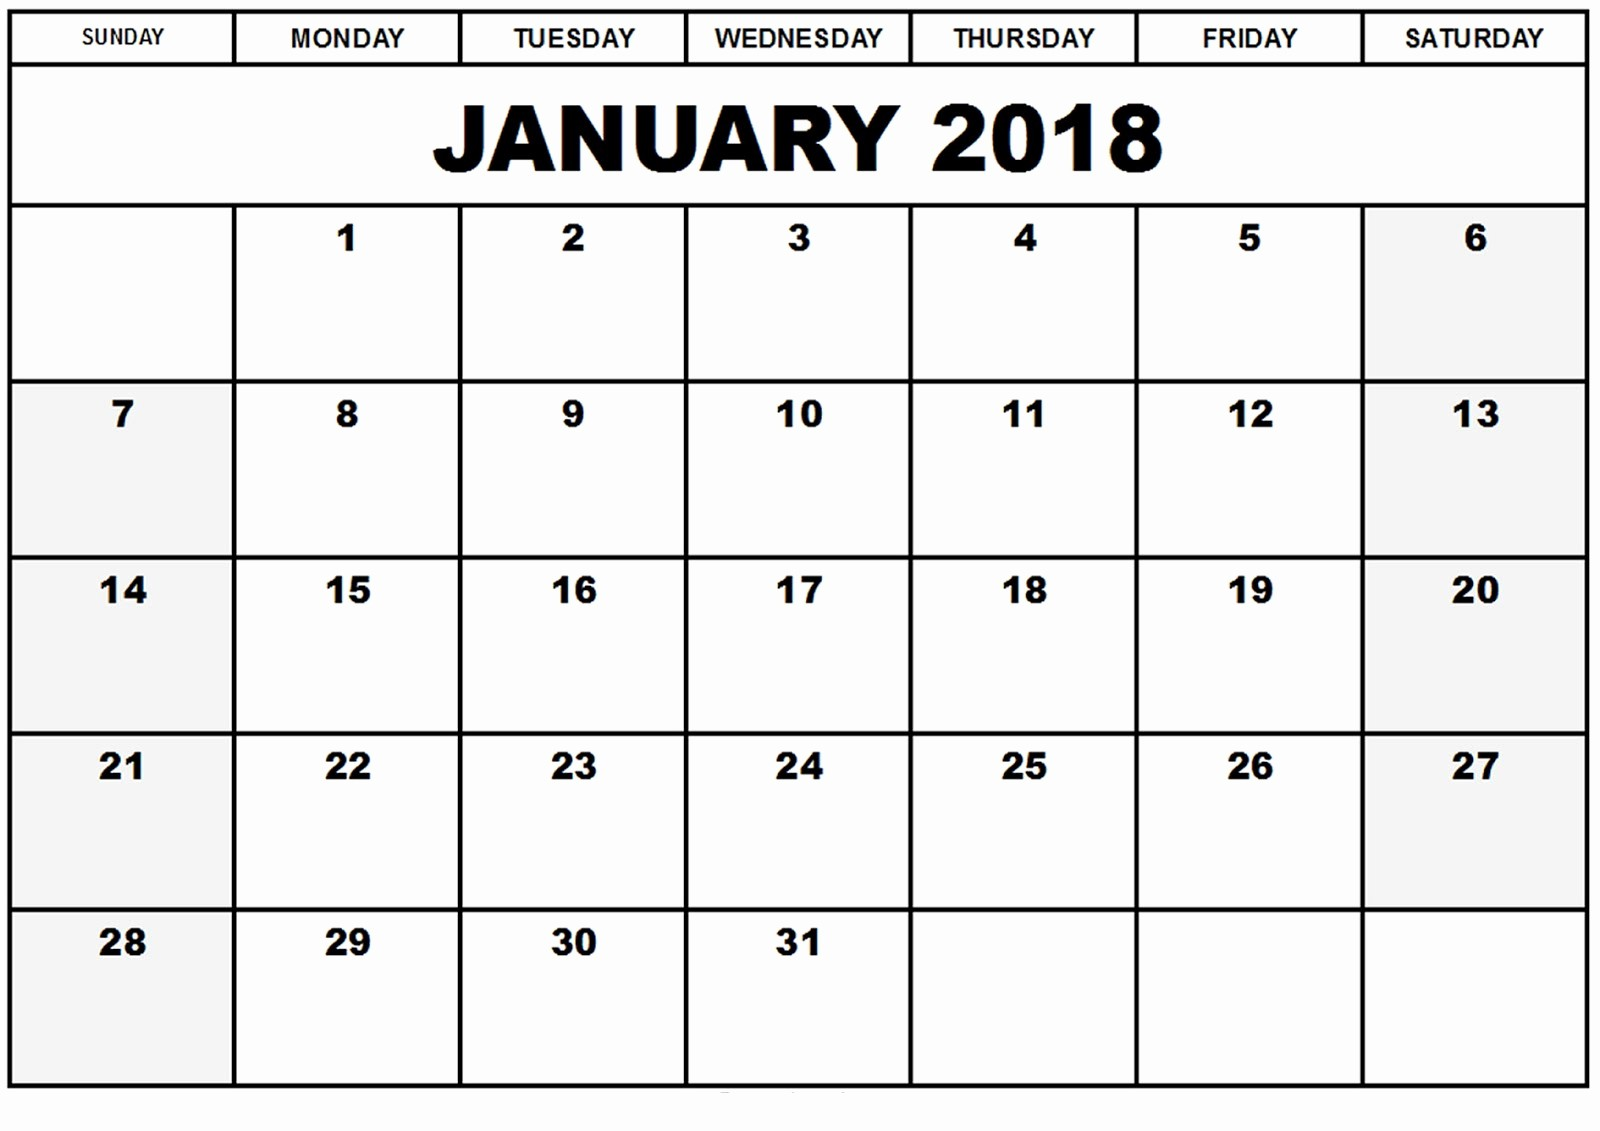 Blank January 2018 Calendar Printable Elegant Printable Calendar 2018 [free] January 2018 Printable